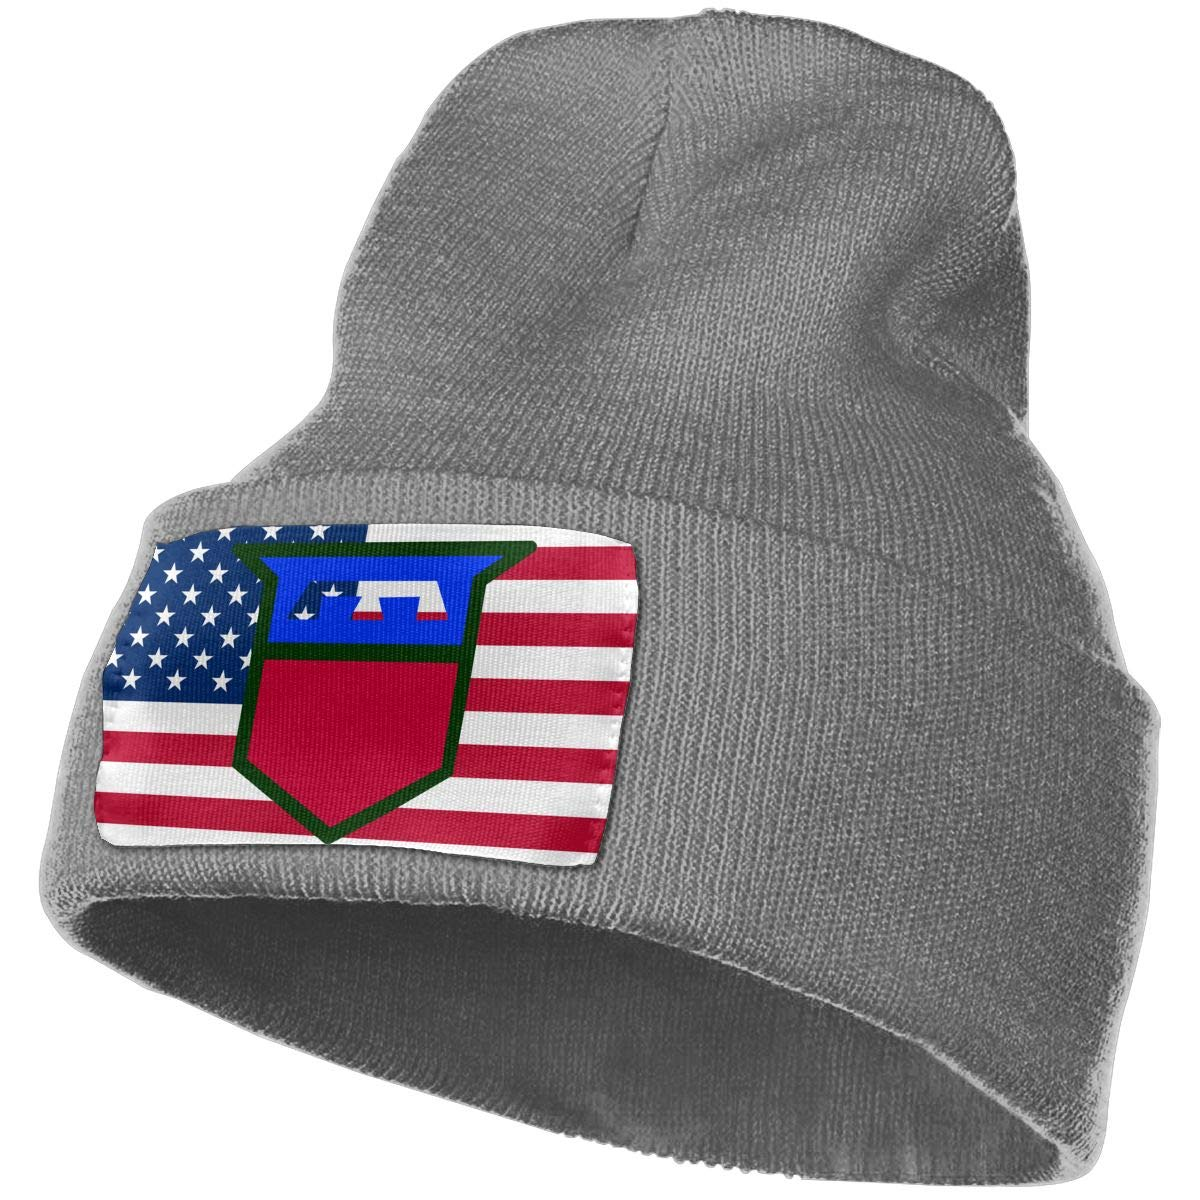 76th Infantry Division Men/&Women Warm Winter Knit Plain Beanie Hat Skull Cap Acrylic Knit Cuff Hat